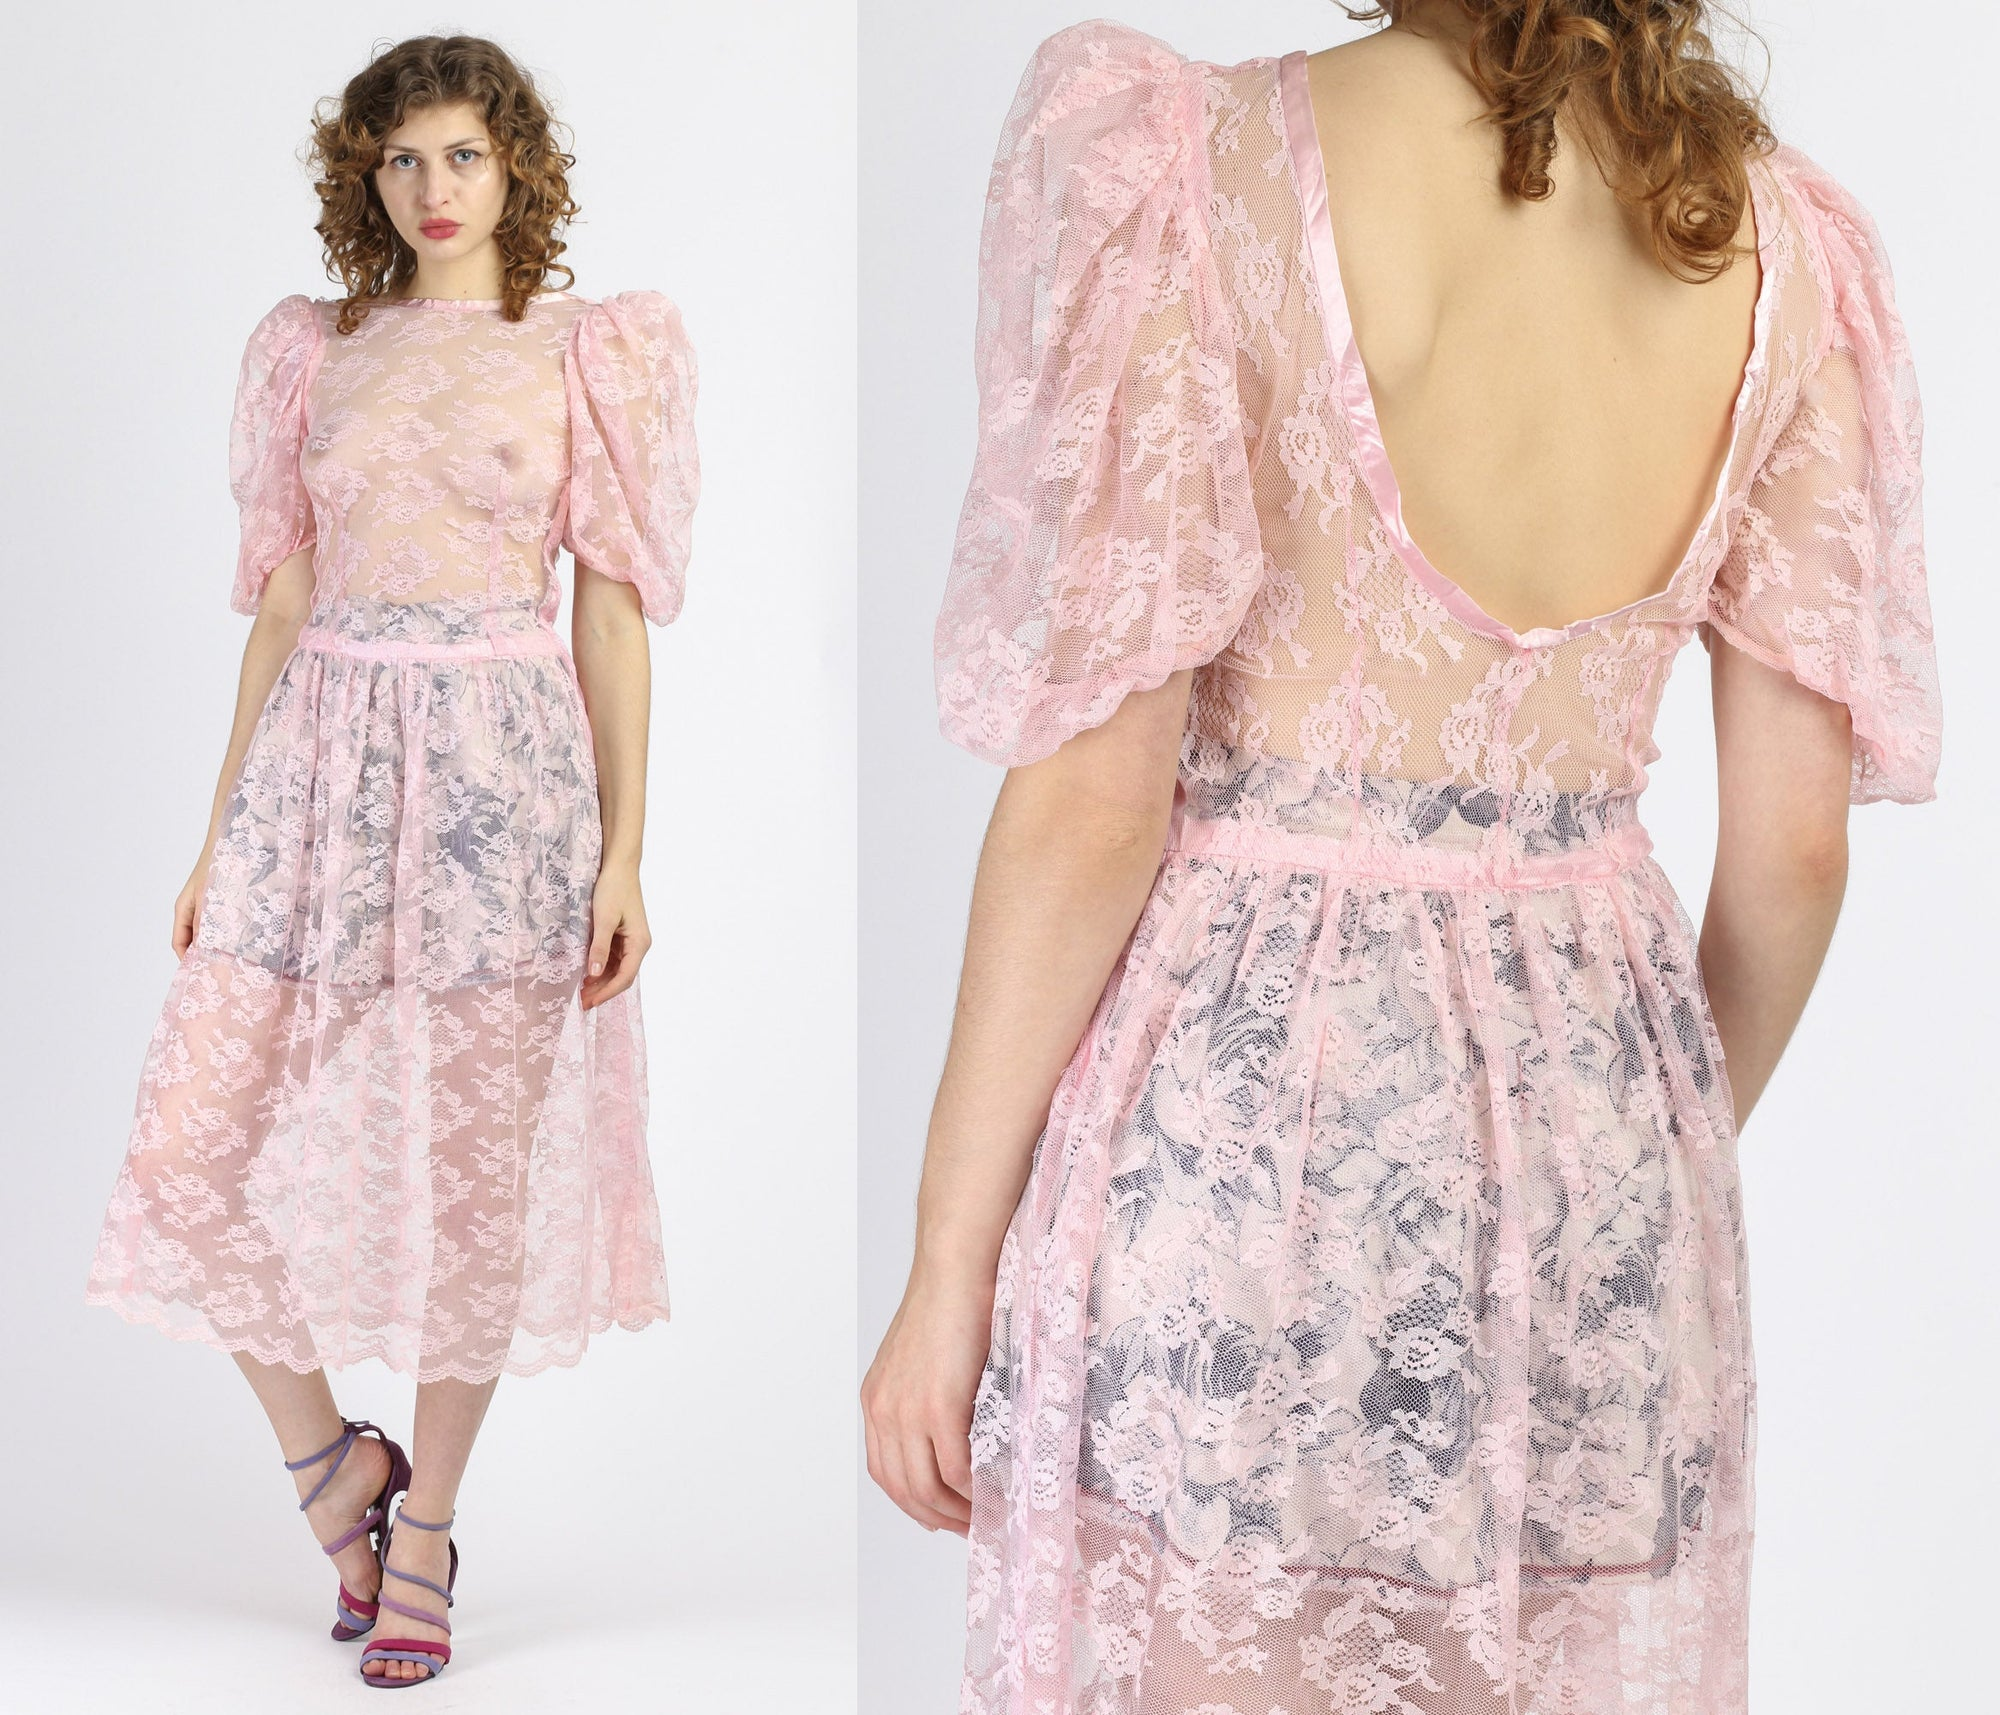 80s Sheer Pink Lace Dress - Medium